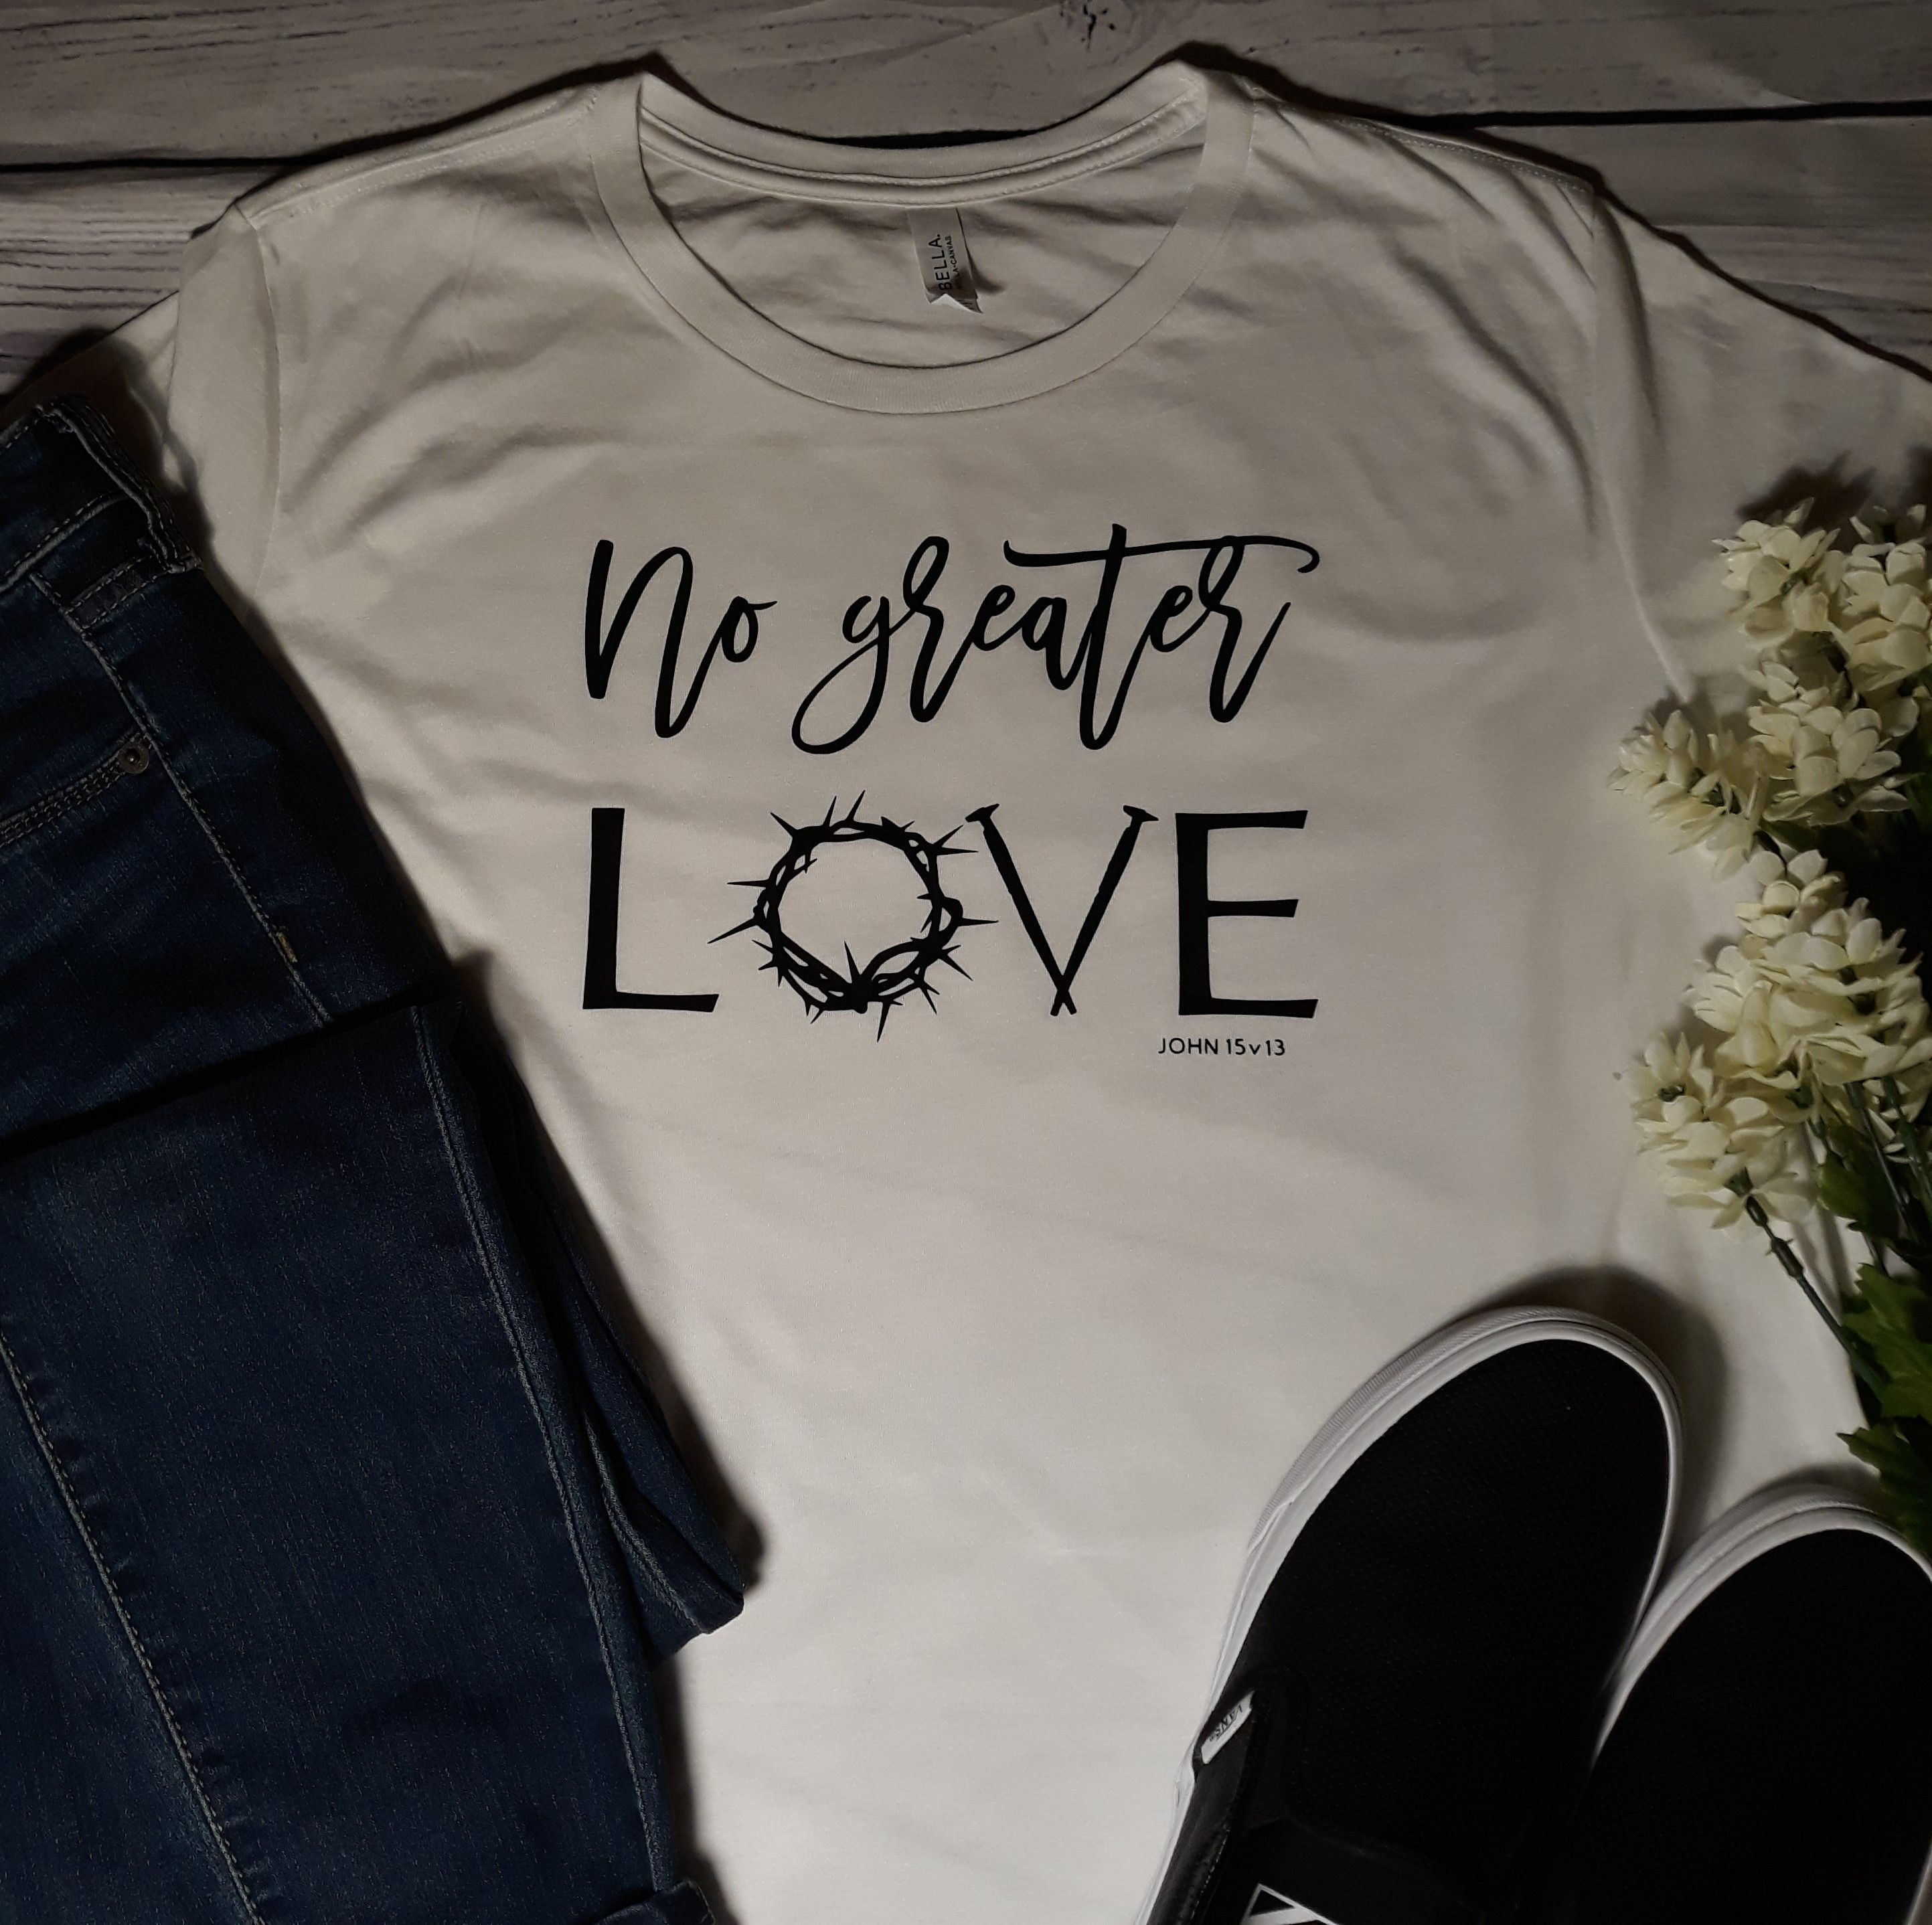 Download Pin on Shirt ideas